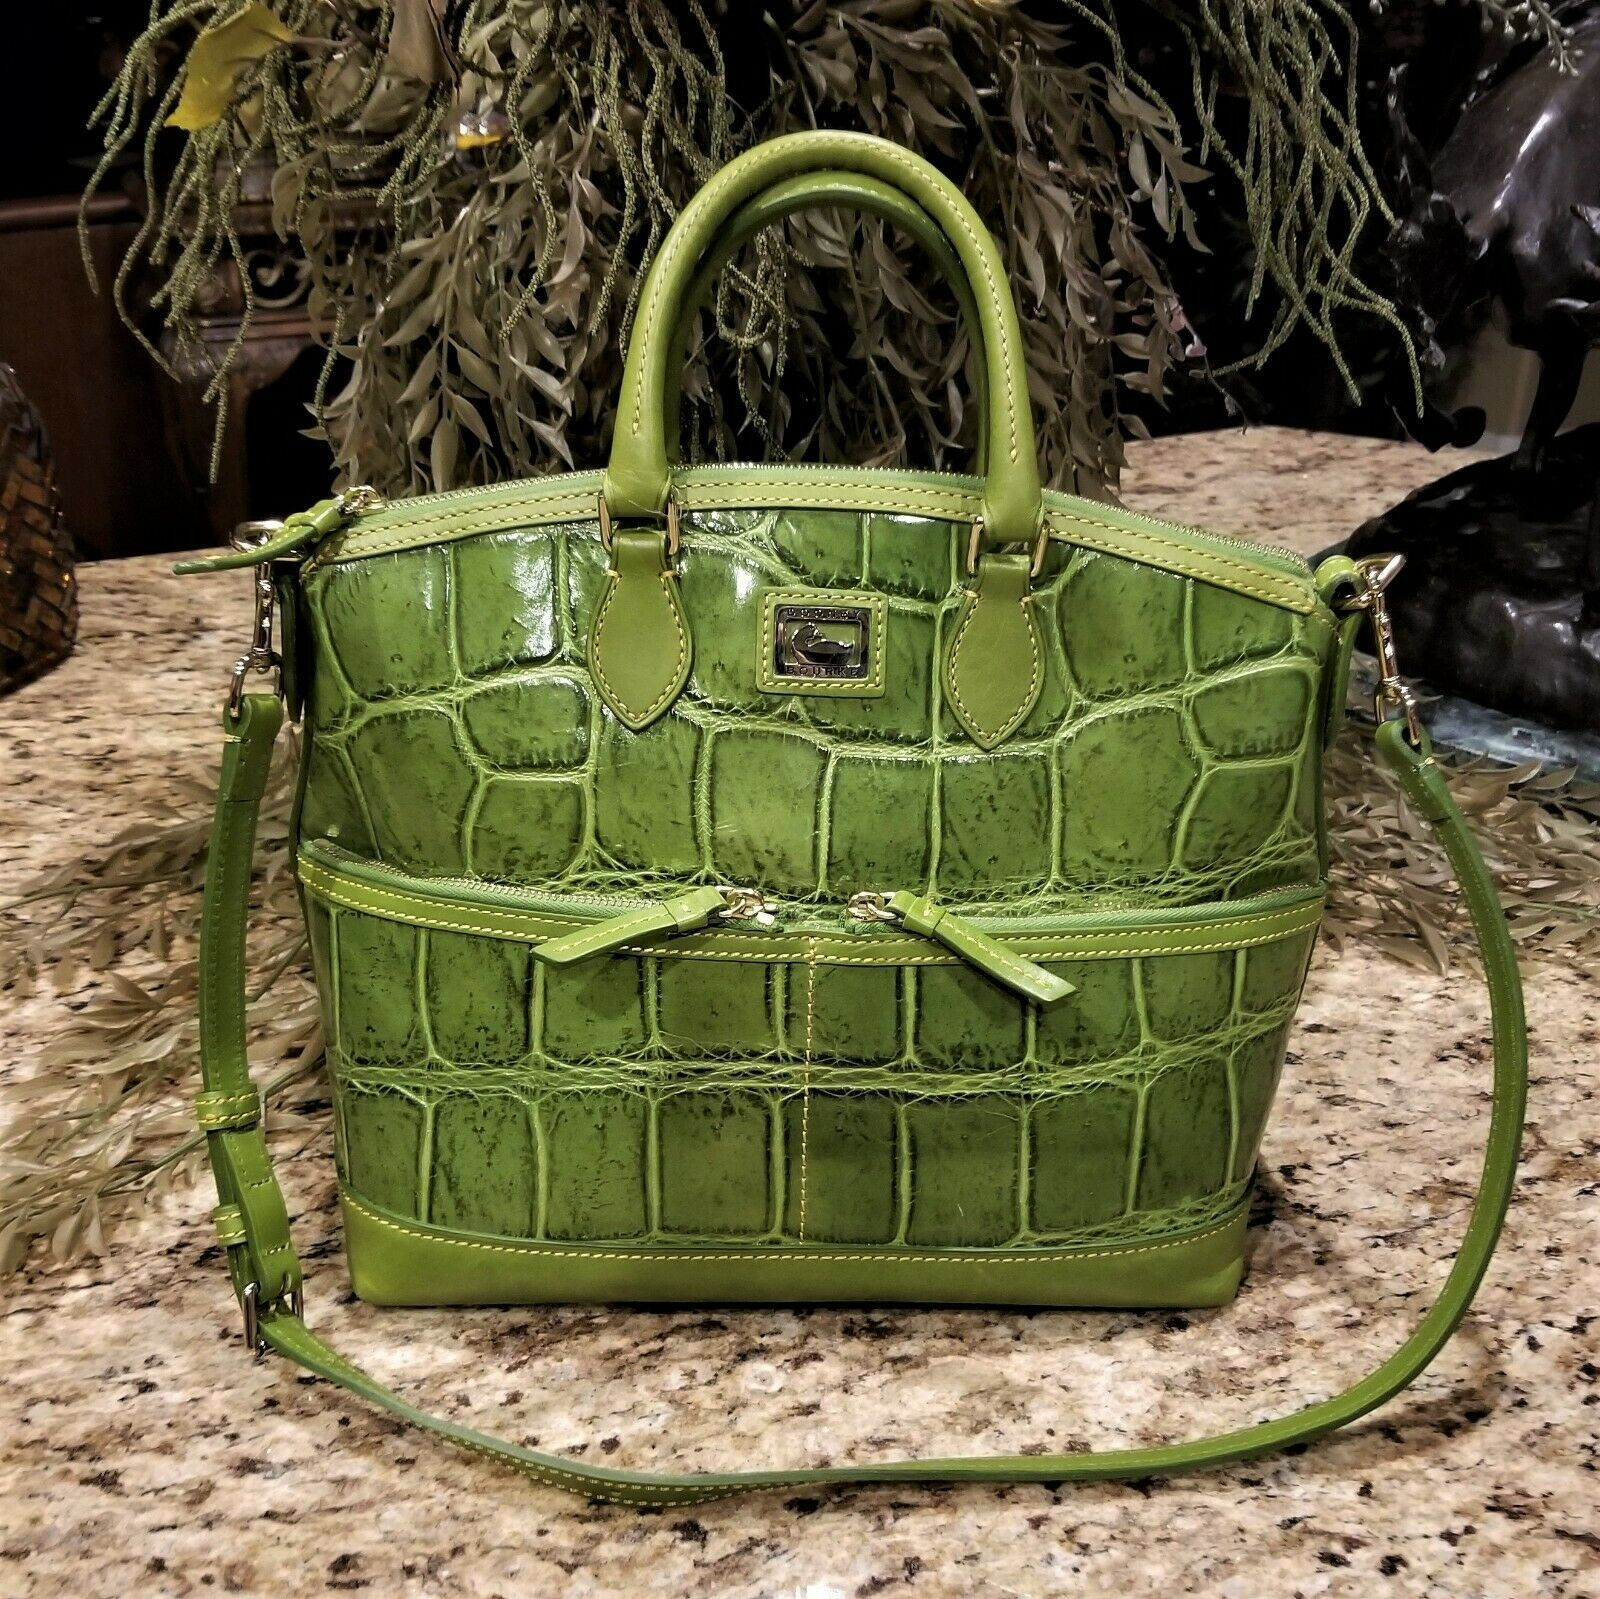 Large DOONEY & BOURKE Apple Green Embossed Croc Leather Satchel Crossbody